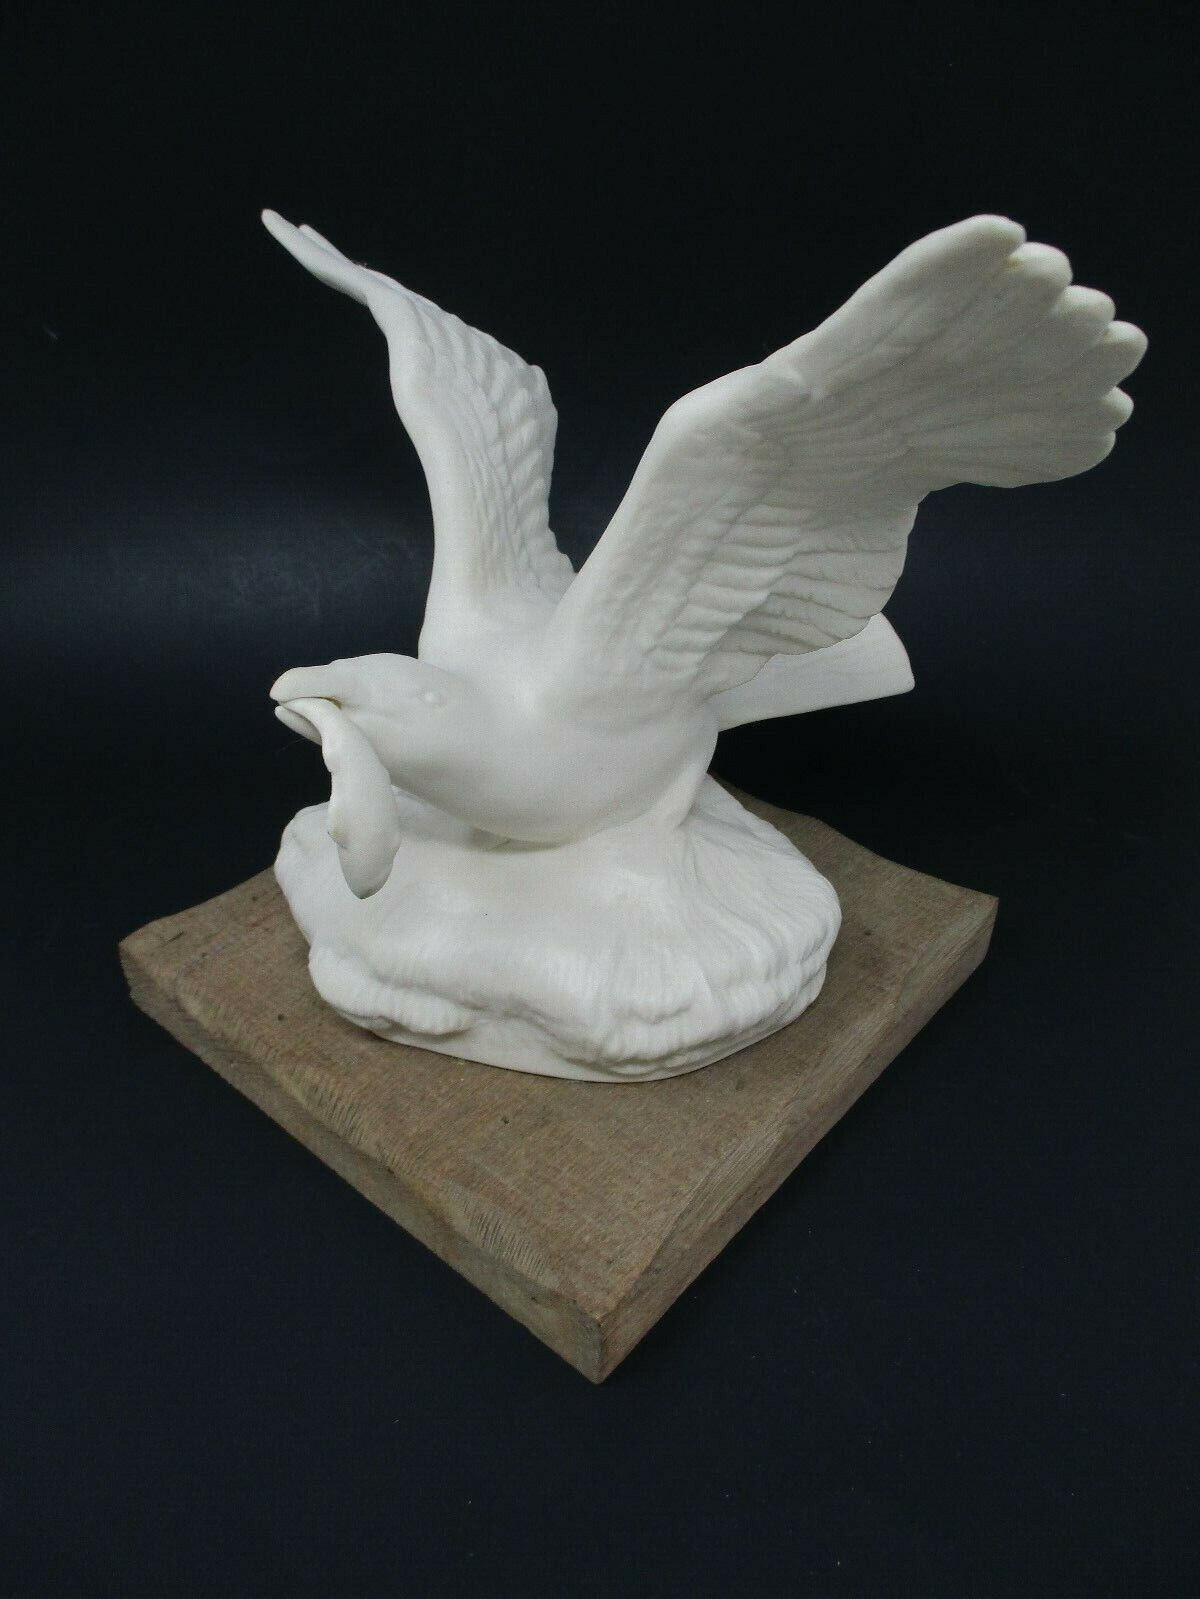 Vintage White Ceramic Seagull Figurine on Driftwood